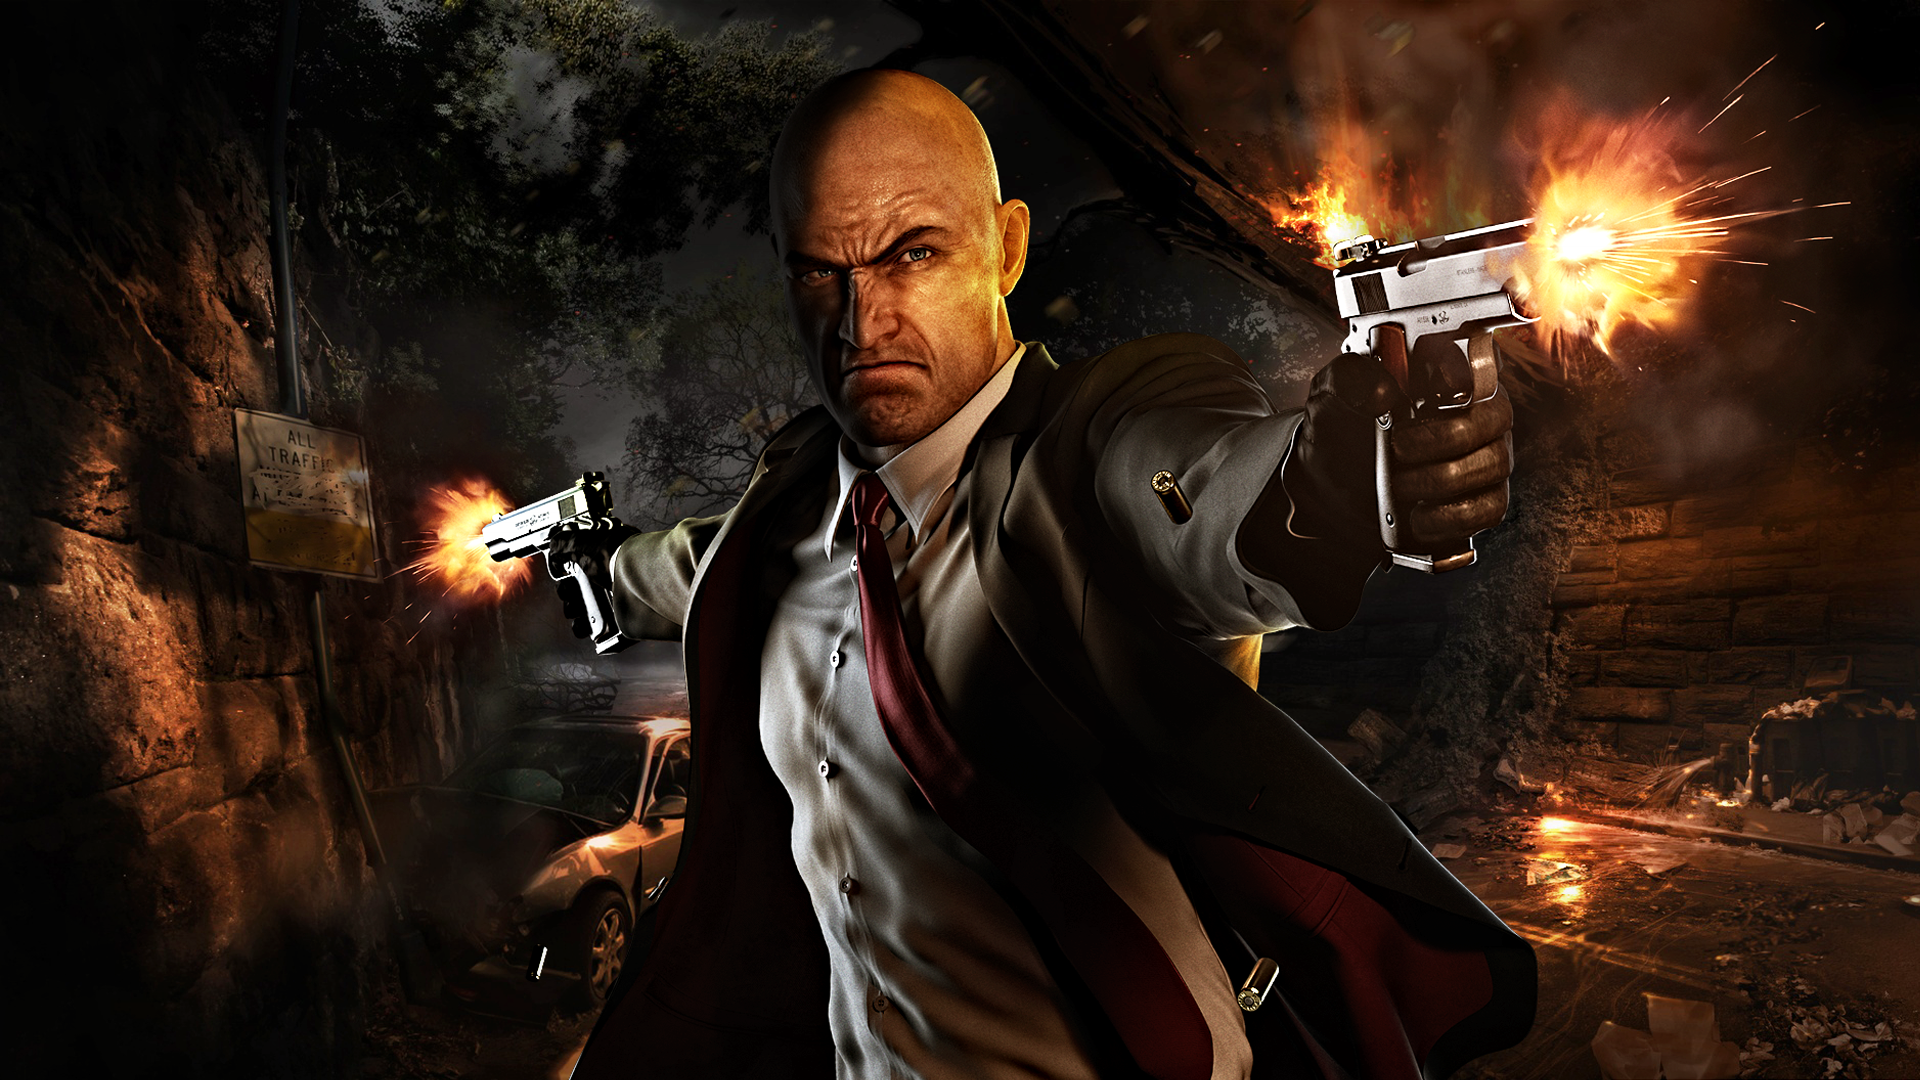 Hitman Absolution Wallpaper HD 1080p ImageBankbiz 1920x1080